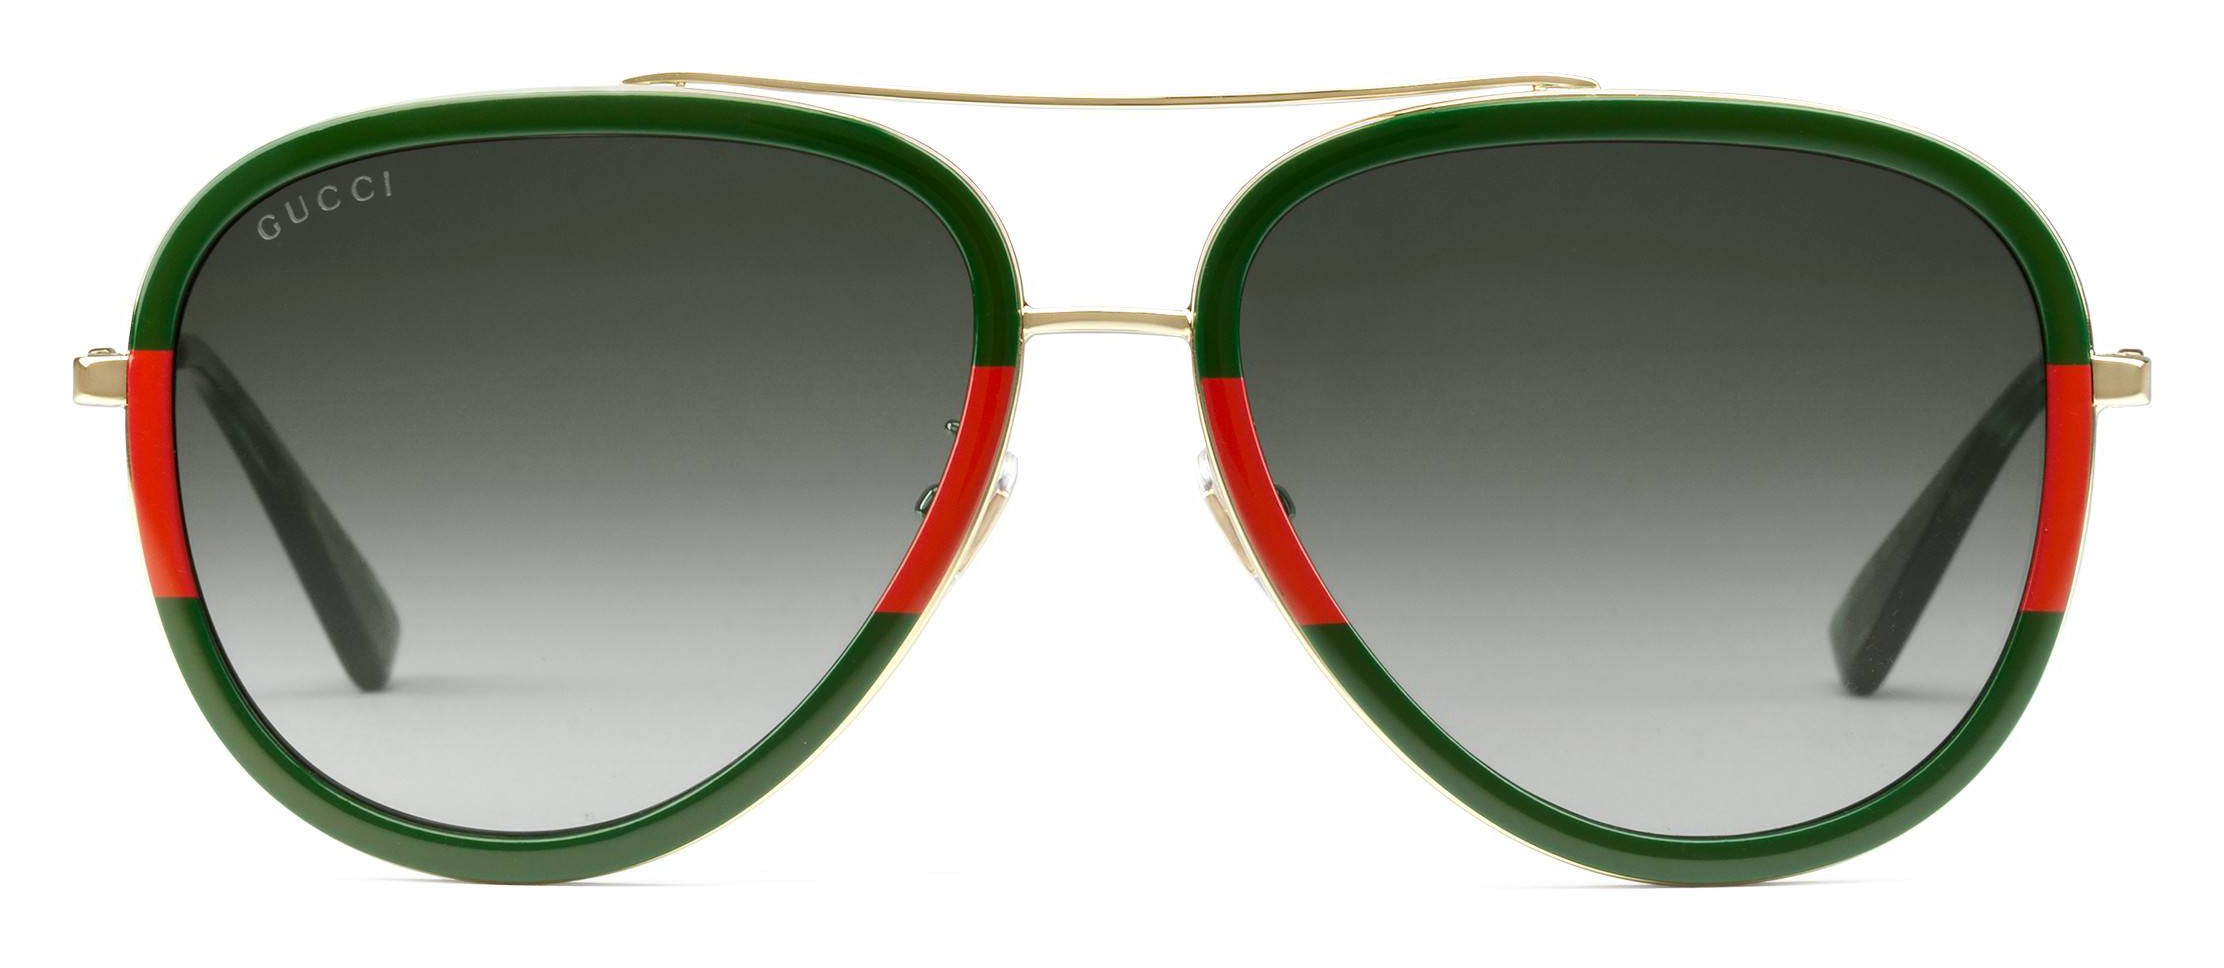 2aa4aa1e95 Gucci - Aviator Acetate Sunglasses - Gold with Green and Red Web Frame - Gucci  Eyewear - Avvenice